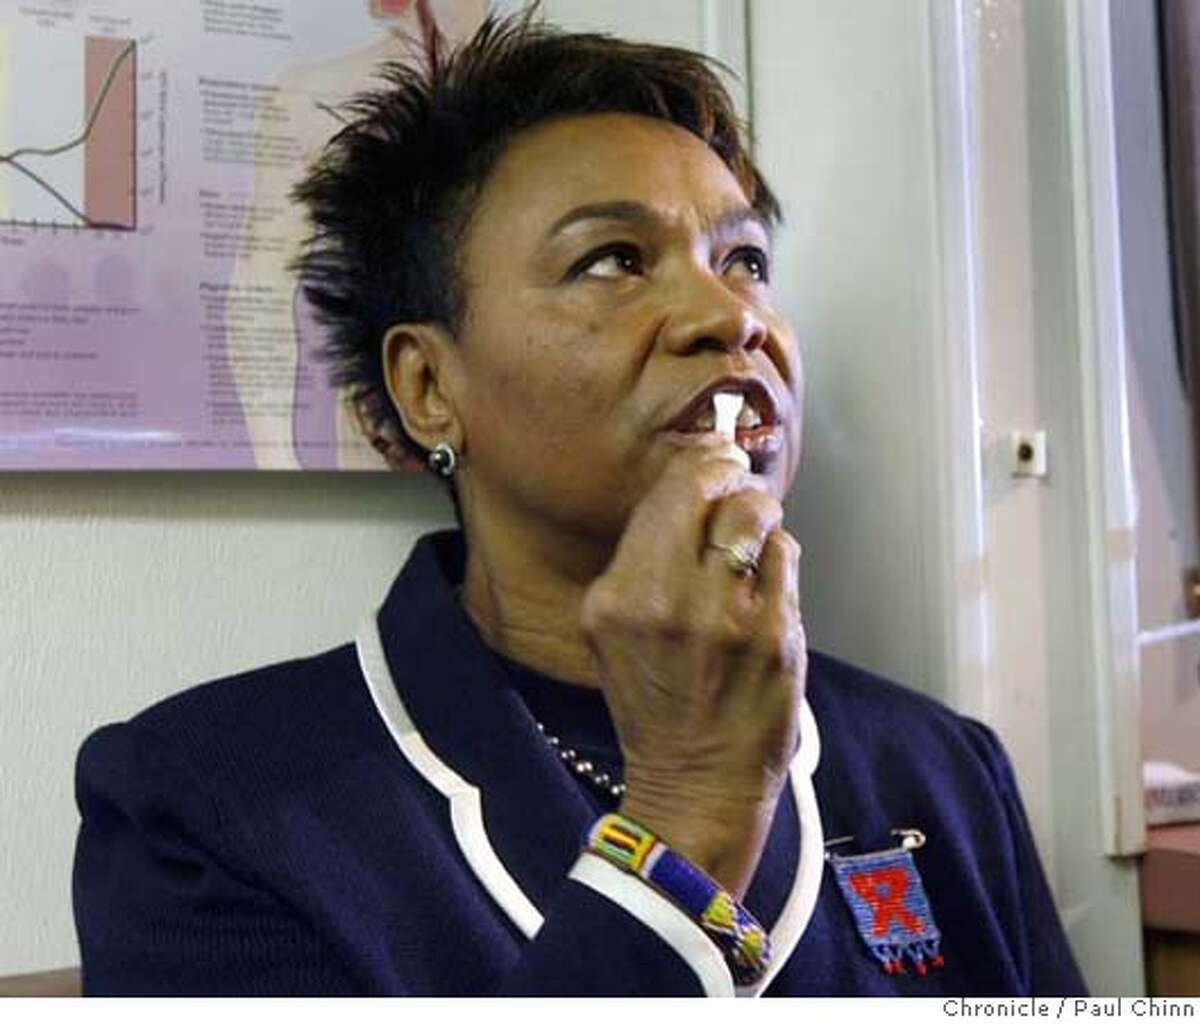 Congresswoman Barbara Lee rubs a swab across her gums as she's tested for HIV to observe World AIDS Day and encourage testing among the African-American and other minority communities in Oakland, Calif. on Friday, Dec. 1, 2006. African-Americans account for nearly 50 percent of all AIDS/HIV cases in the country, according to a release from the congresswoman's office. Oakland mayor-elect Ron Dellums was scheduled to attend the event but was a no-show. PAUL CHINN/The Chronicle **Barbara Lee, Ron Dellums